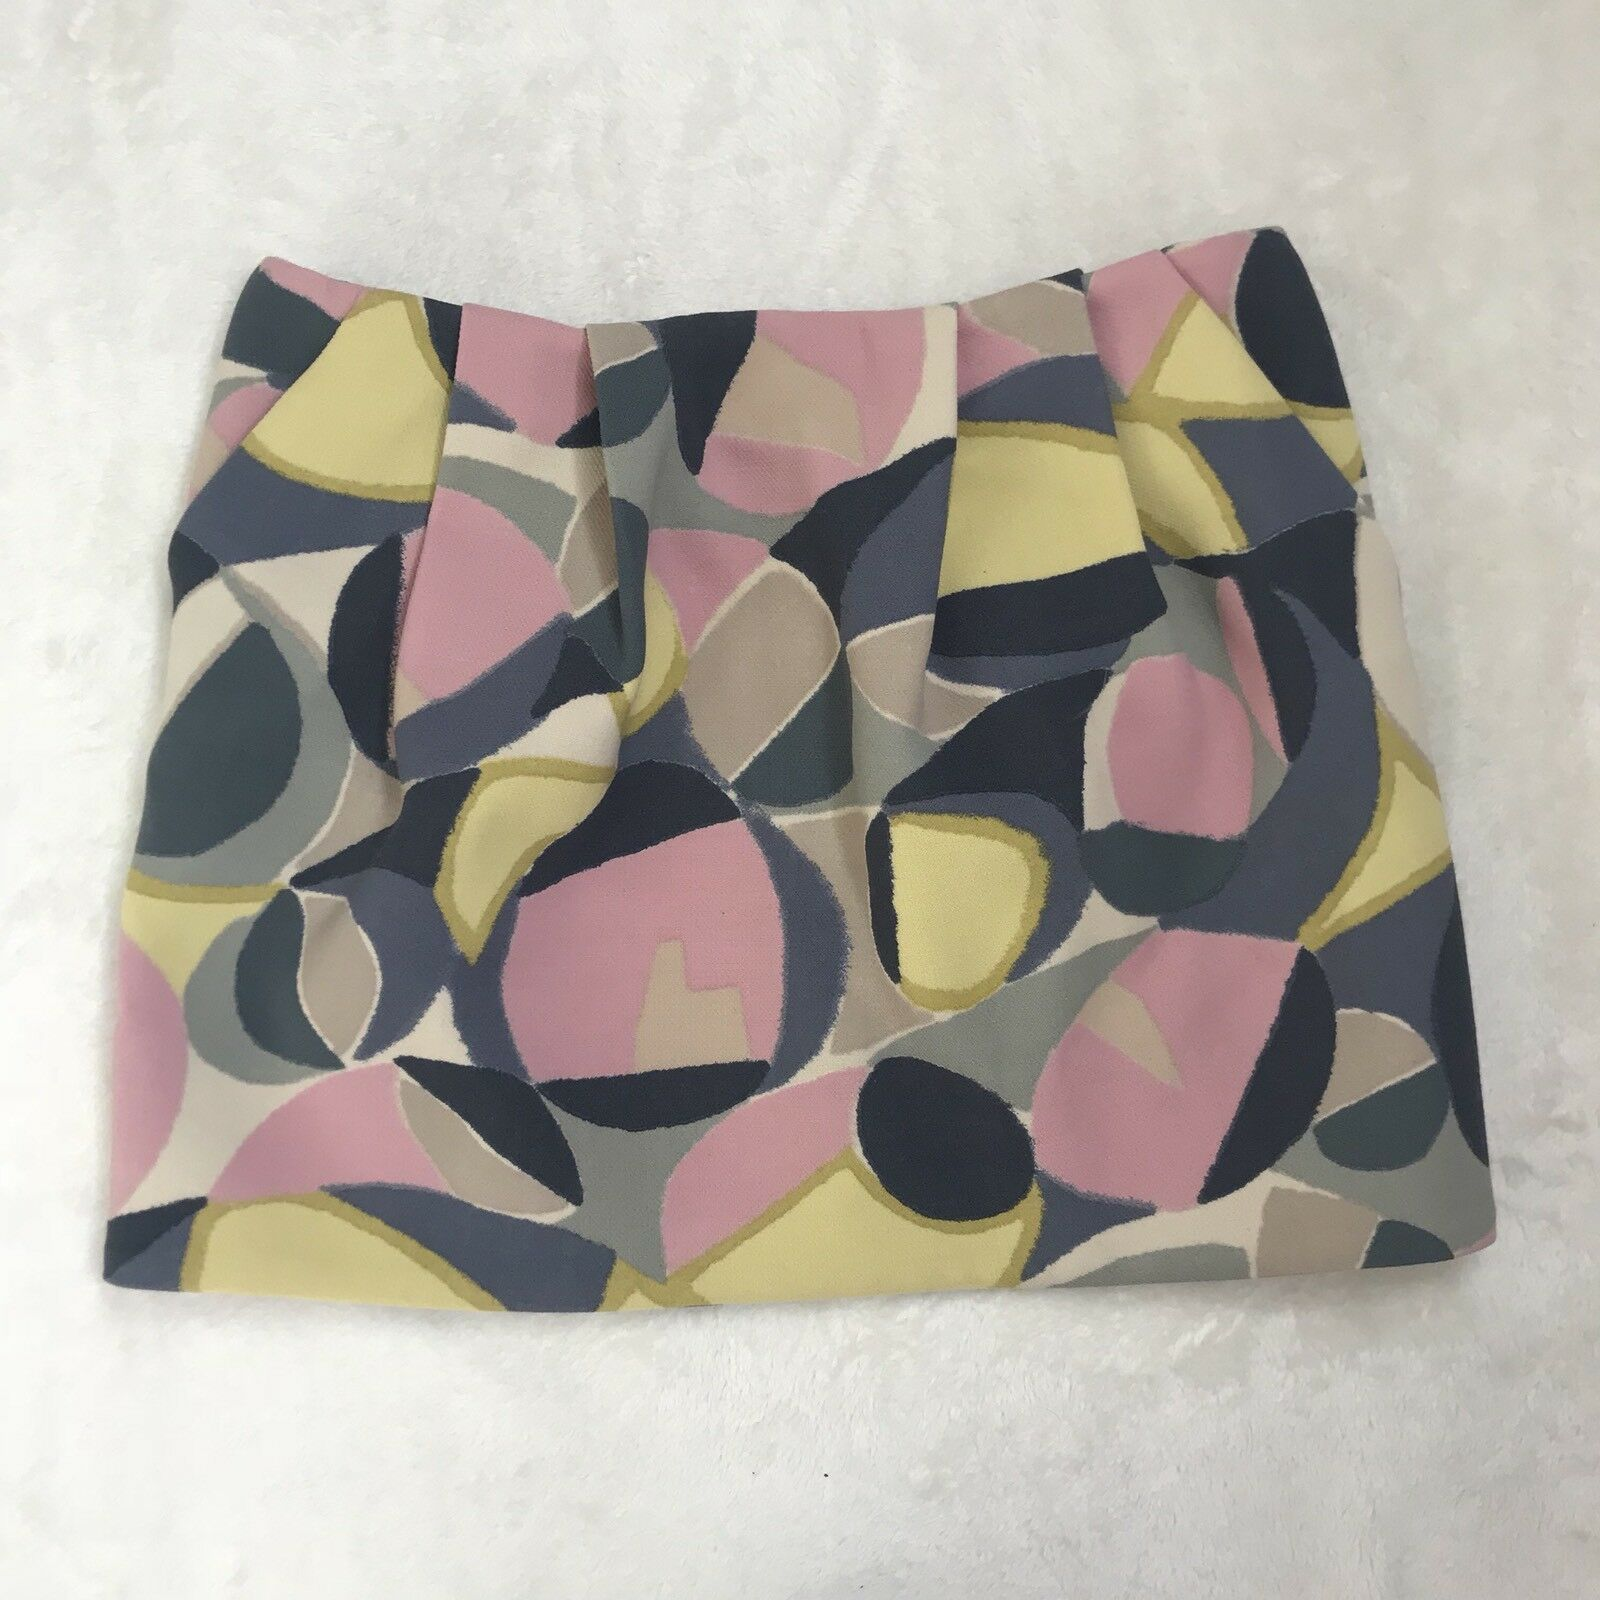 Marni 44 8 Pink Geometric Mod Pattern Printed 100% Wool Pleated Mini Skirt